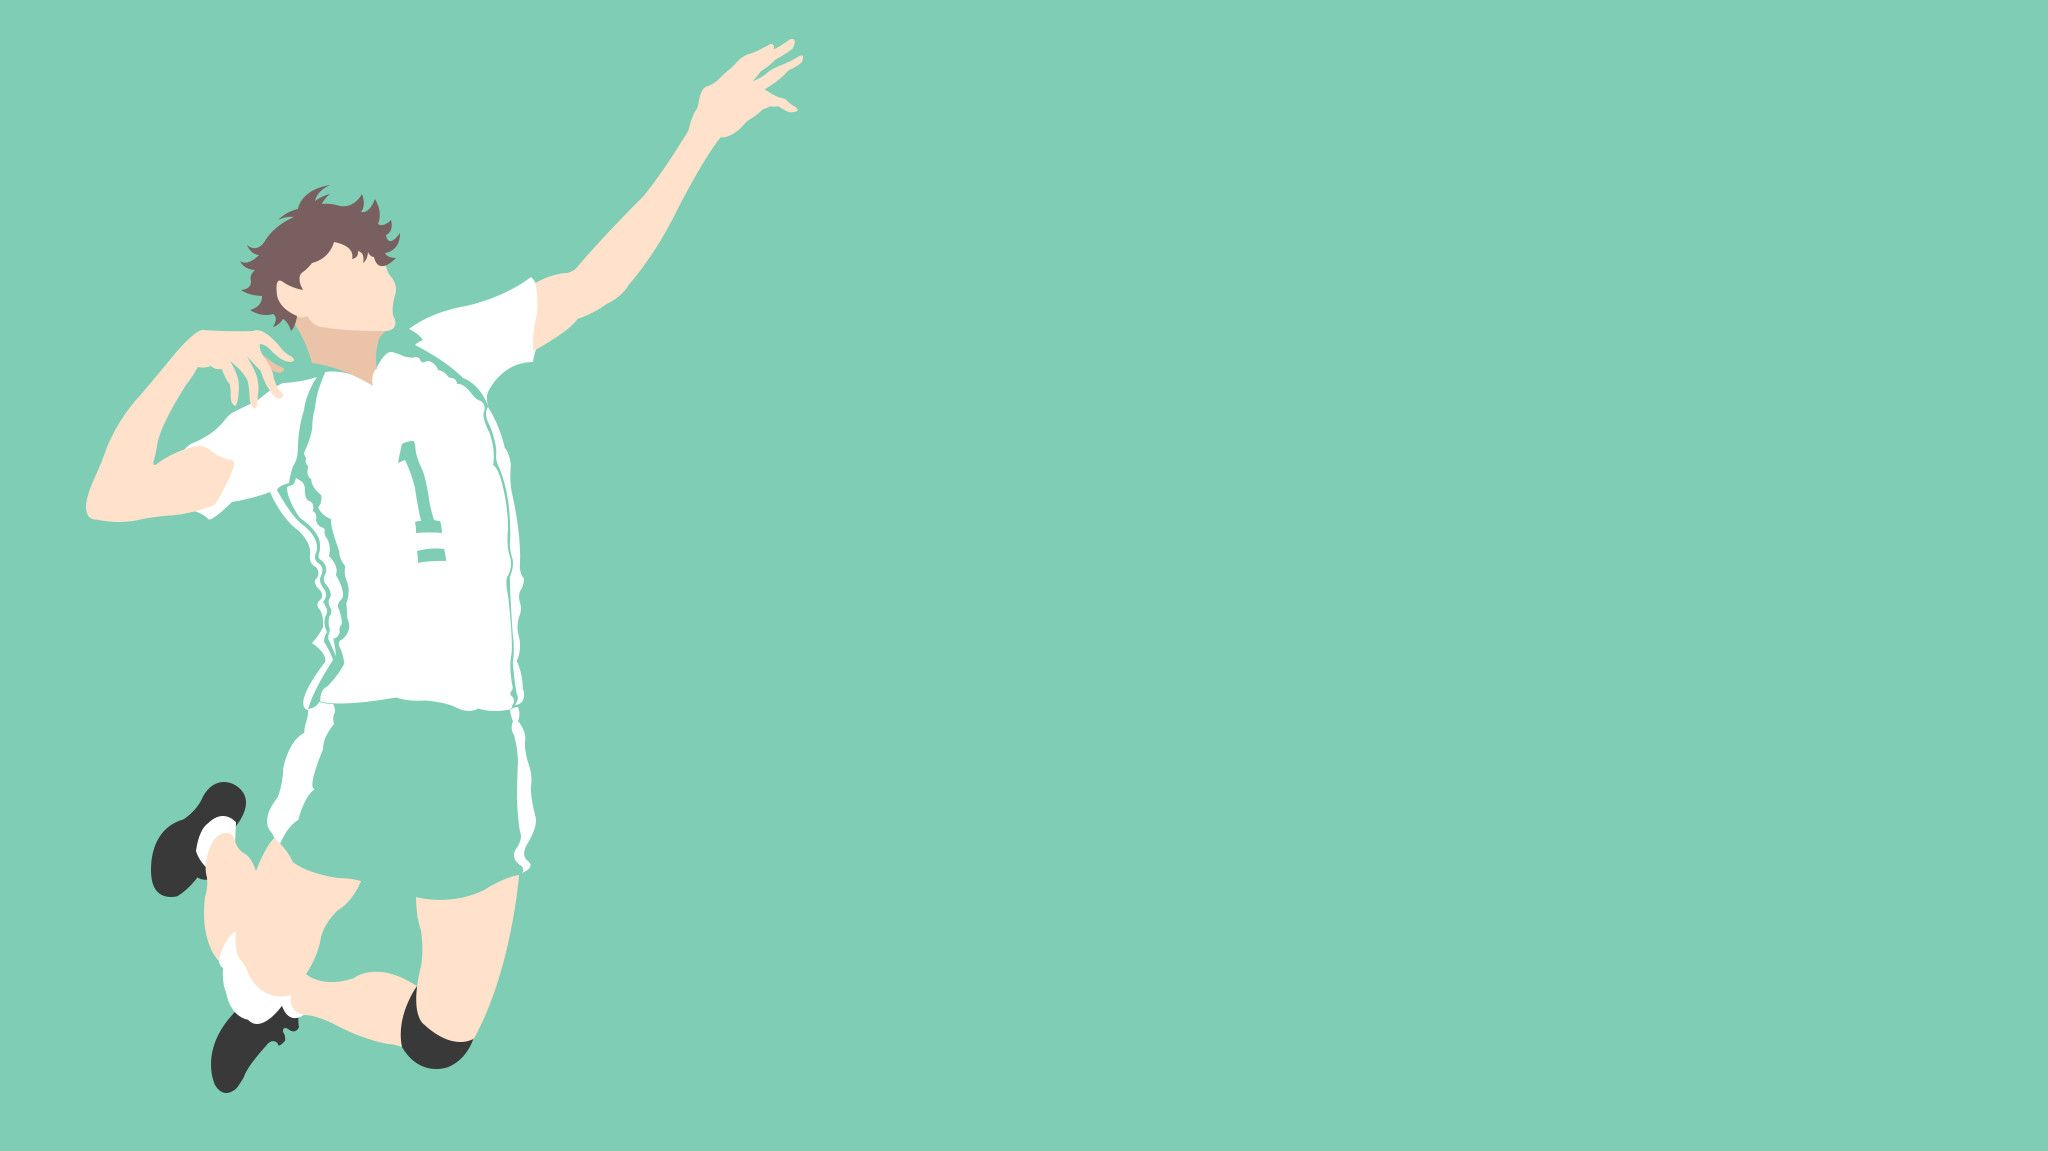 2048x1151 Oikawa Toru Haikyuu Minimalist Wallpaper By Zaimsidqi Haikyuu Wallpaper Haikyuu Anime Oikawa